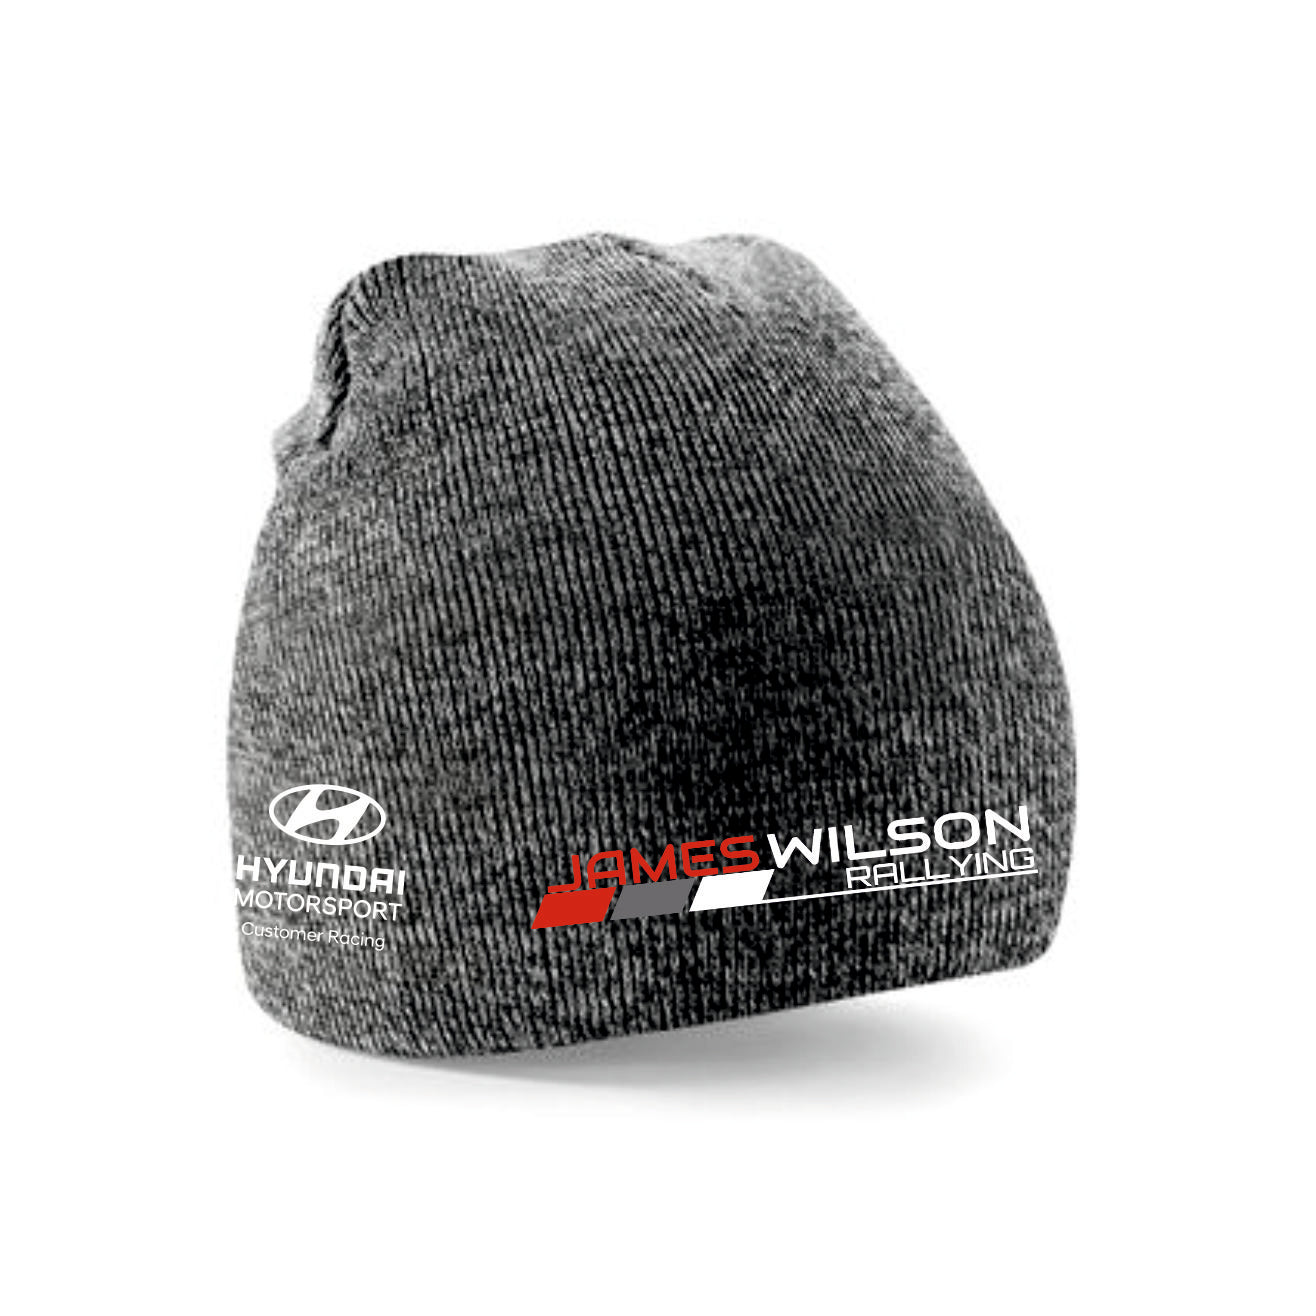 James Wilson Rallying Beanie